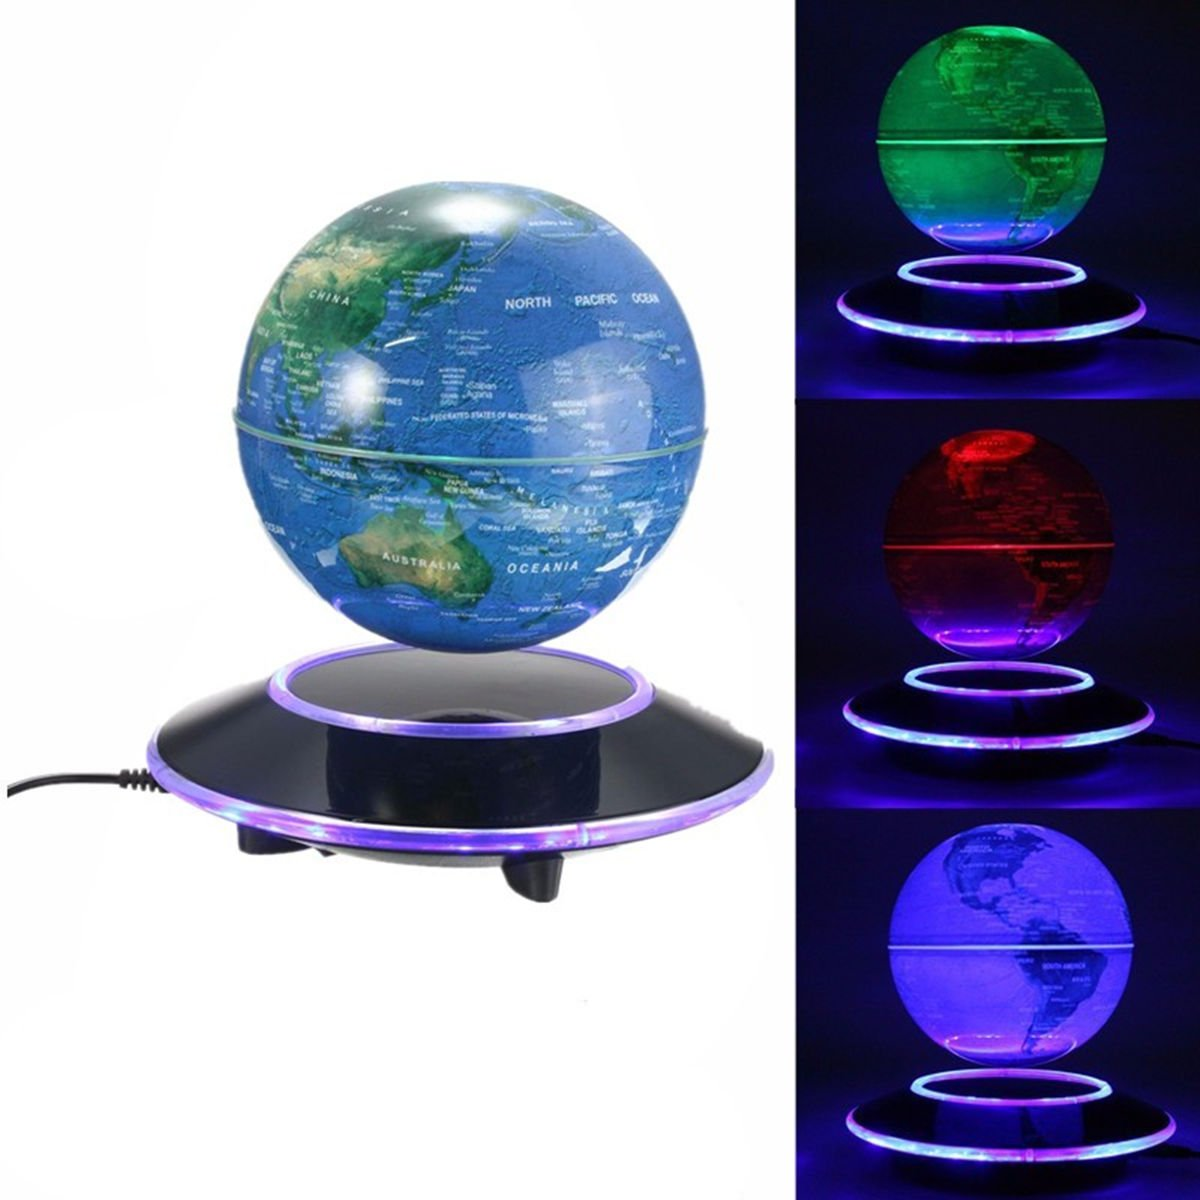 World globeking do way multi color led display 360 degree rotating floating globe for desktop office home decor kids educational magnetic levitation world map birthday easter gifts amazon kitchen home negle Gallery